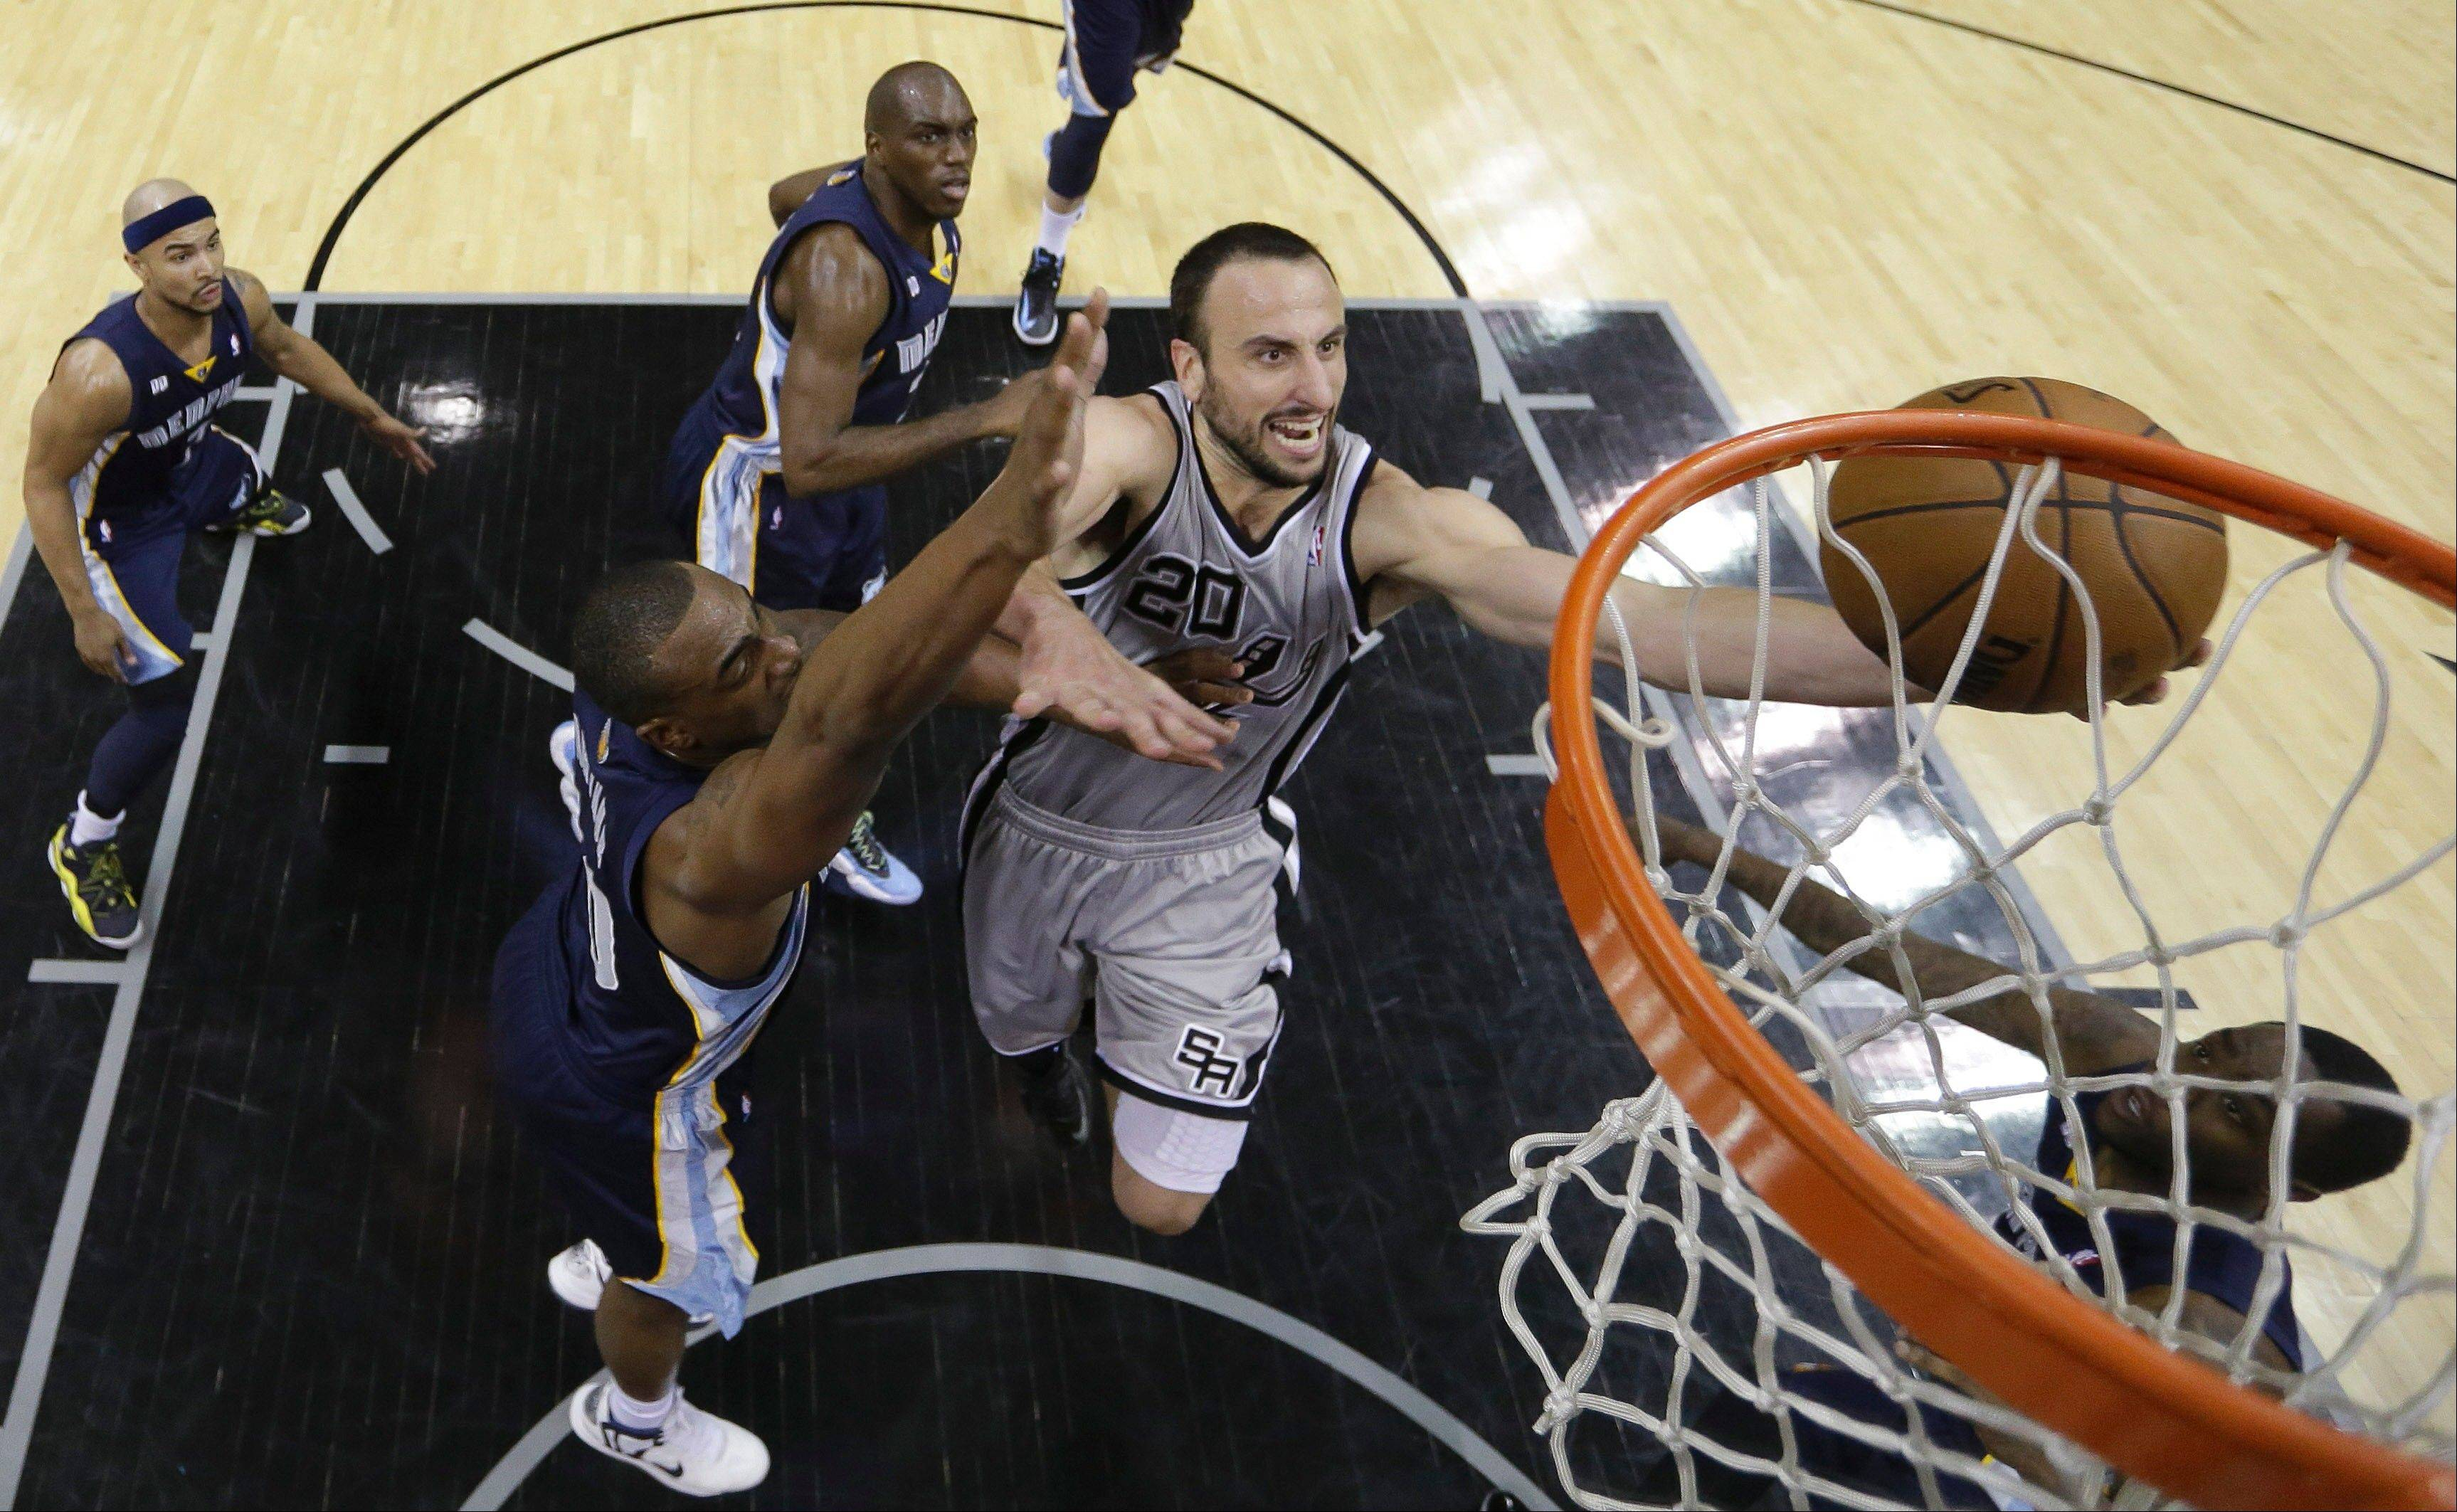 San Antonio Spurs' Manu Ginobili (20), of Argentina, drives to the basket as Memphis Grizzlies' Darrell Arthur, left, defends him during the second half in Game 1 of a Western Conference Finals NBA basketball playoff series, Sunday, May 19, 2013, in San Antonio. San Antonio won 105-83.